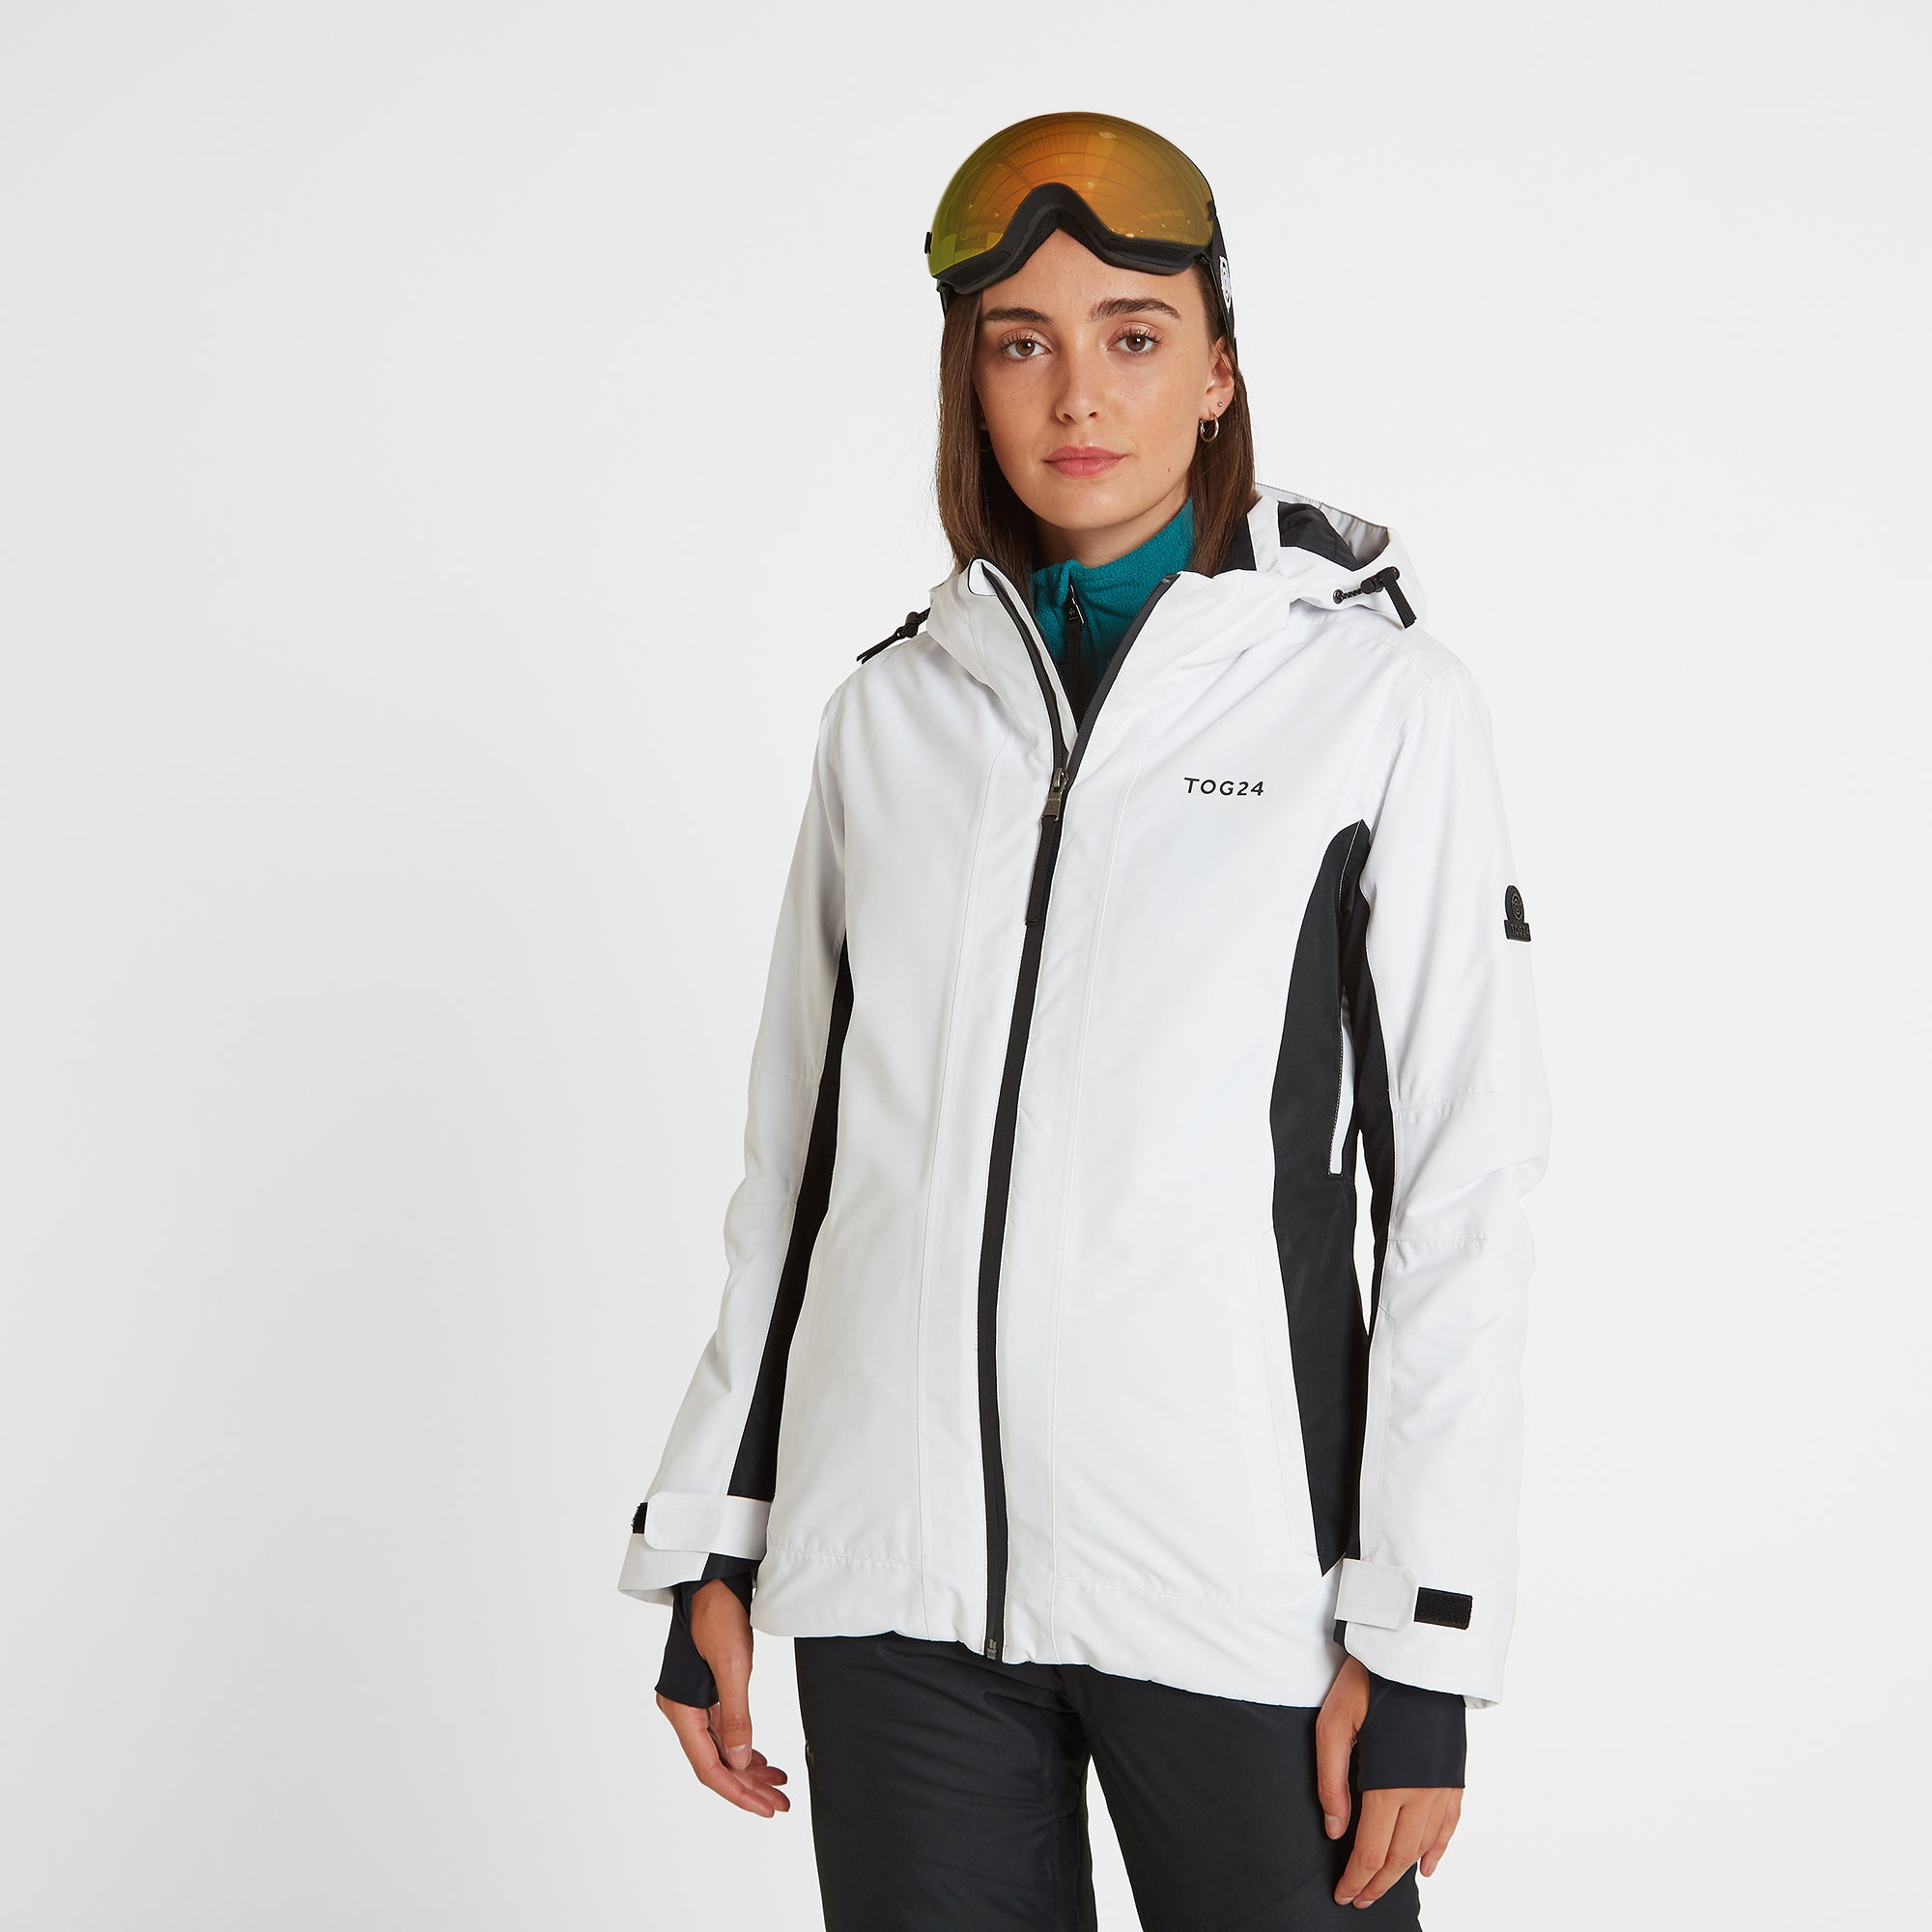 Piper Womens Waterproof Insulated Ski Jacket - White/Black